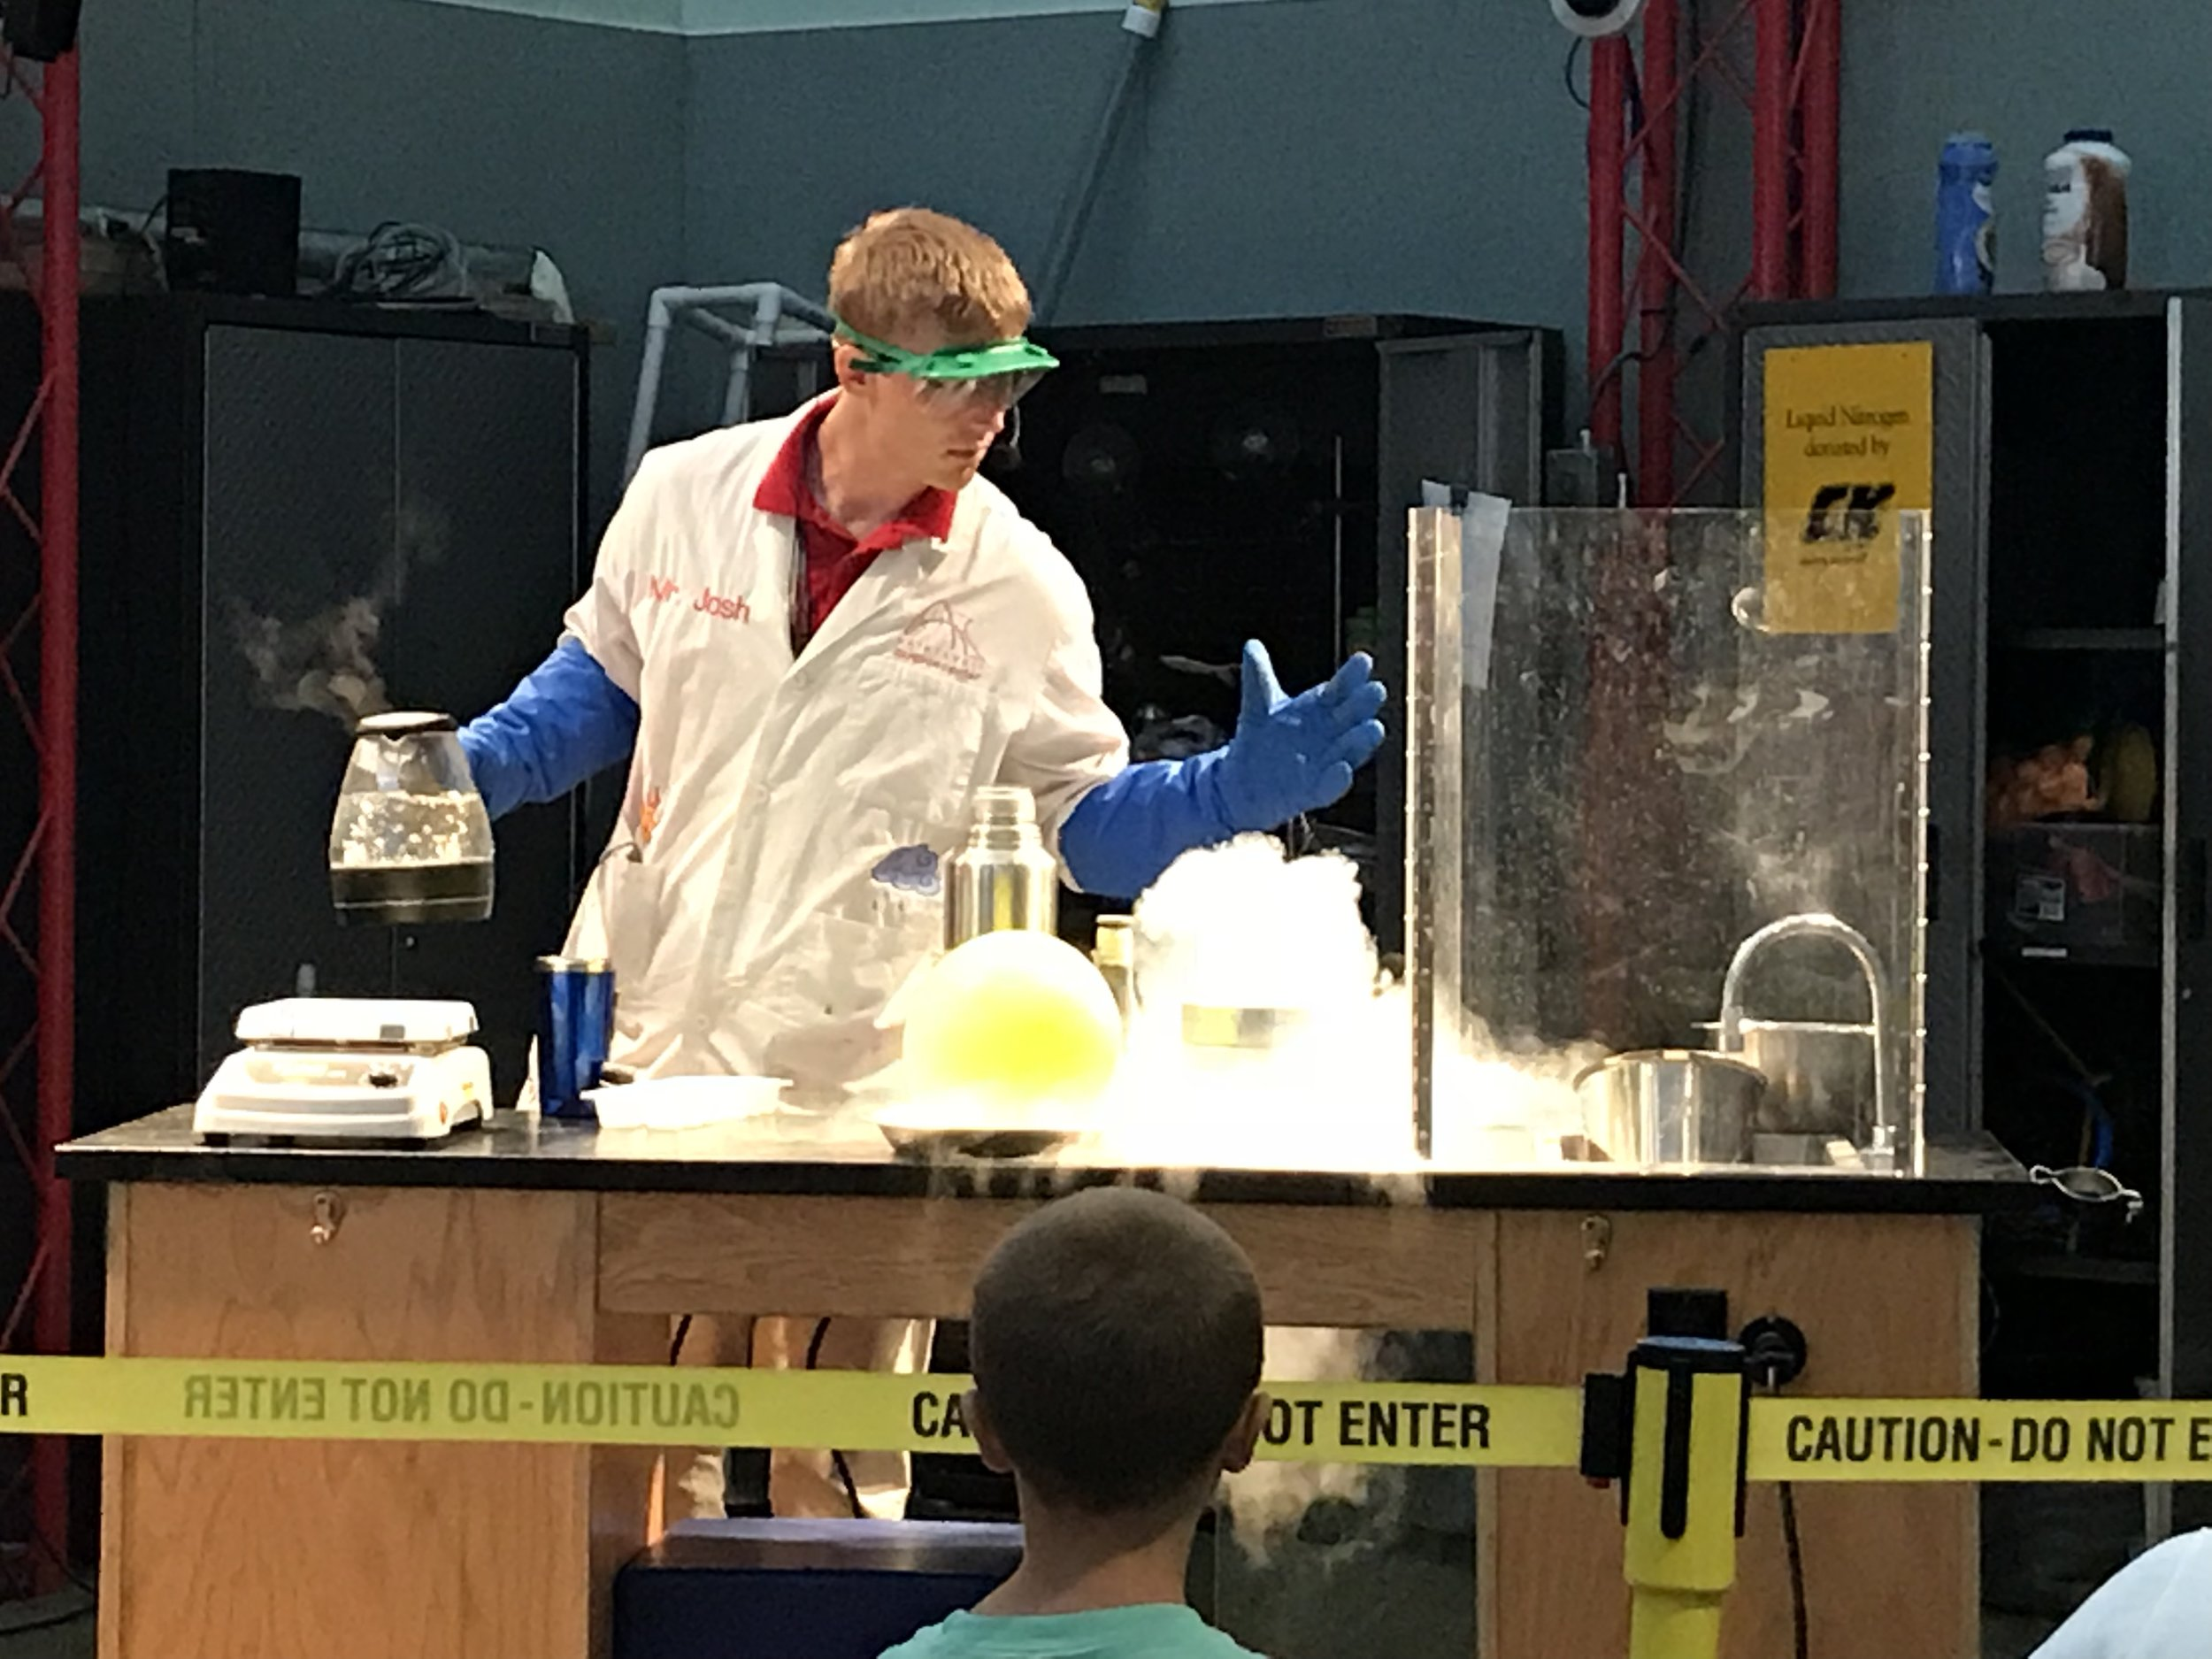 Boiling Hot, Boiling Cold chemistry demonstration at the Science Center. This was so cool!!